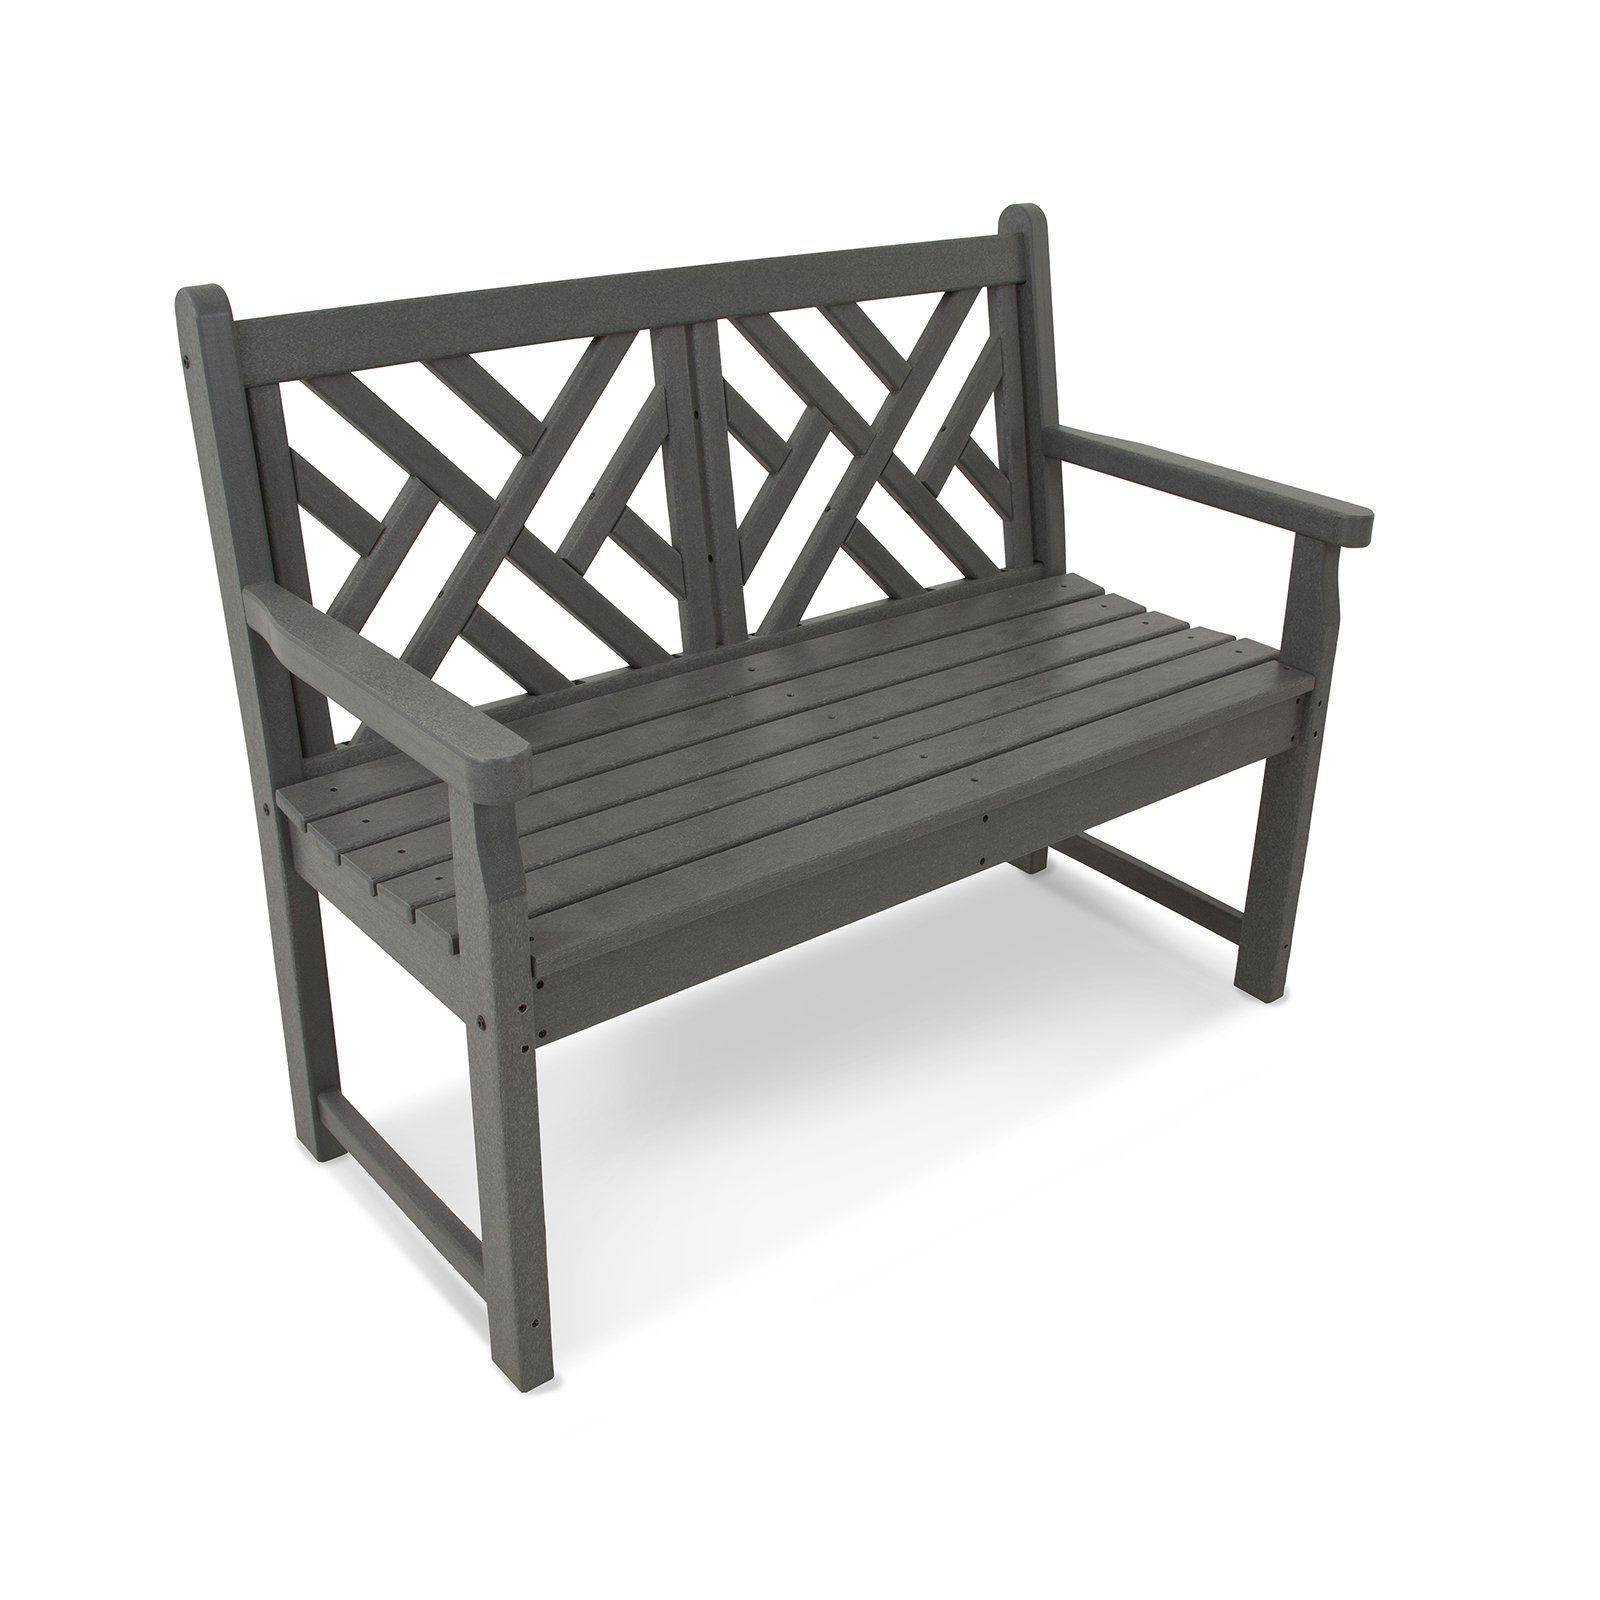 Pinmichelle Burmeister On Abcraftery Inspo In 2020 Regarding Favorite Michelle Metal Garden Benches (View 2 of 30)